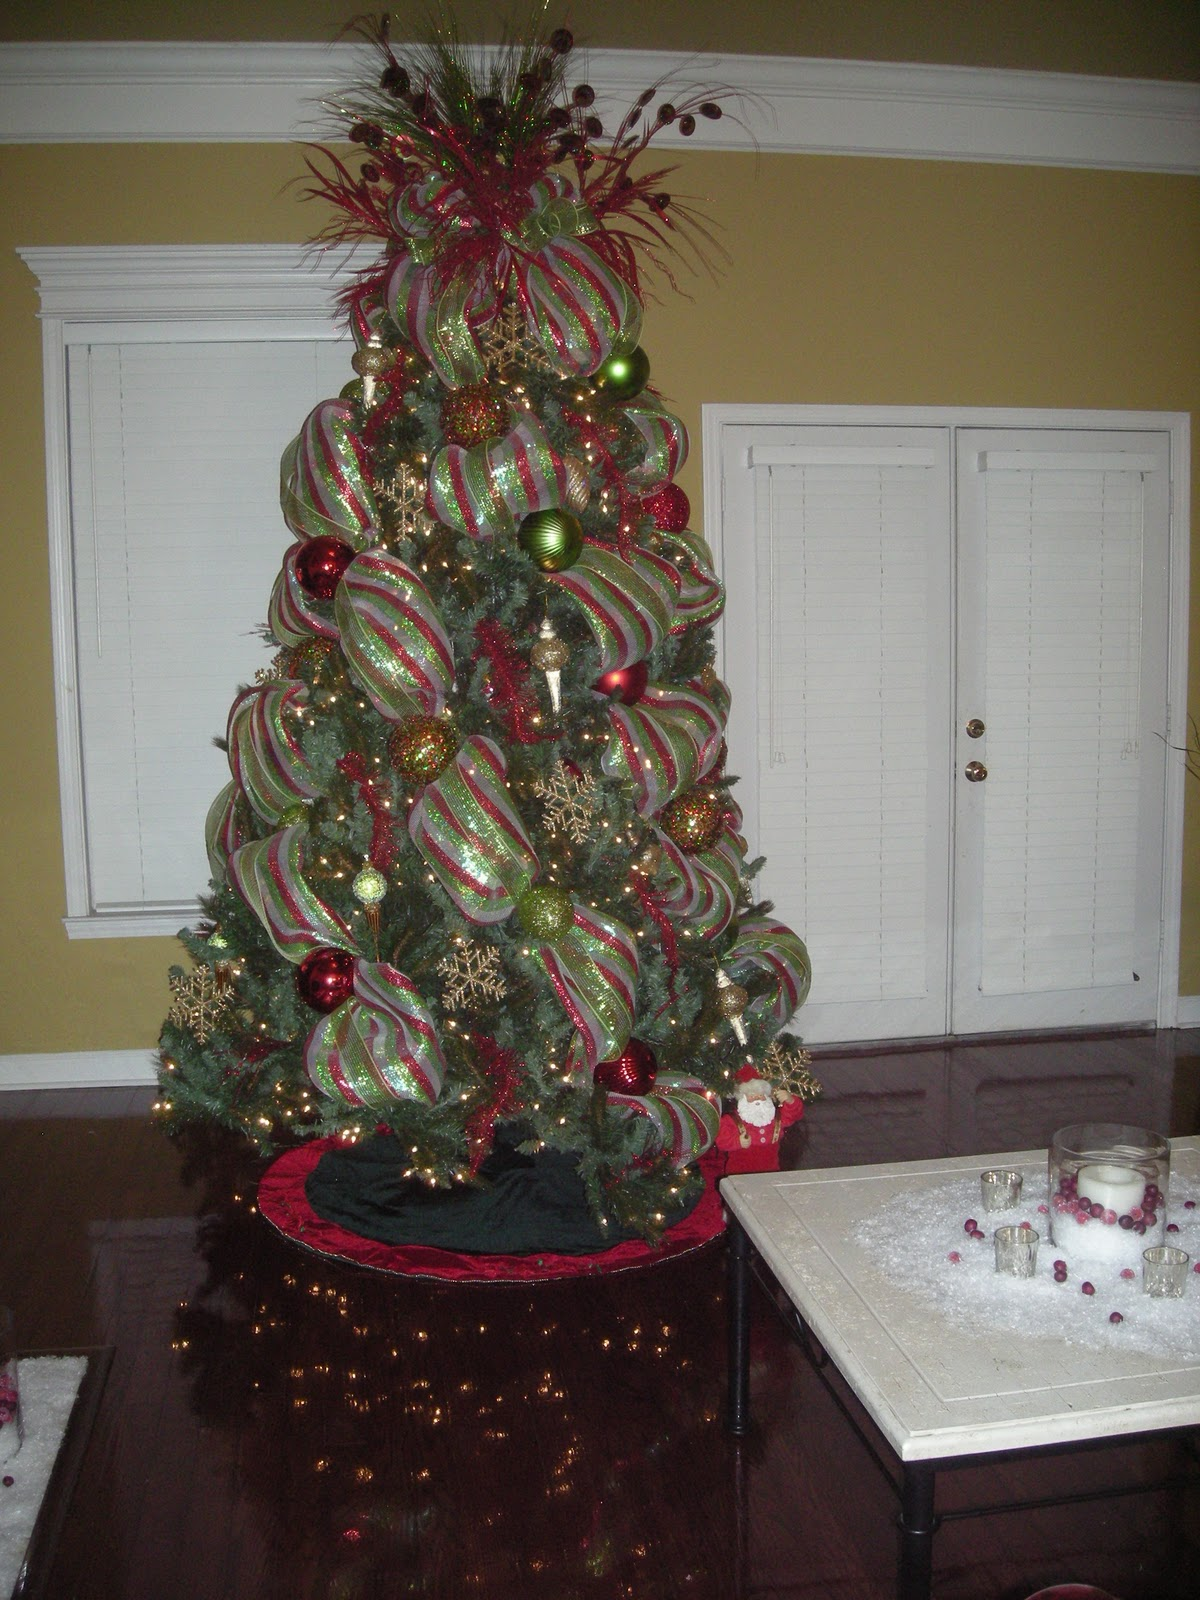 Christmas tree decorations with mesh - photo#1